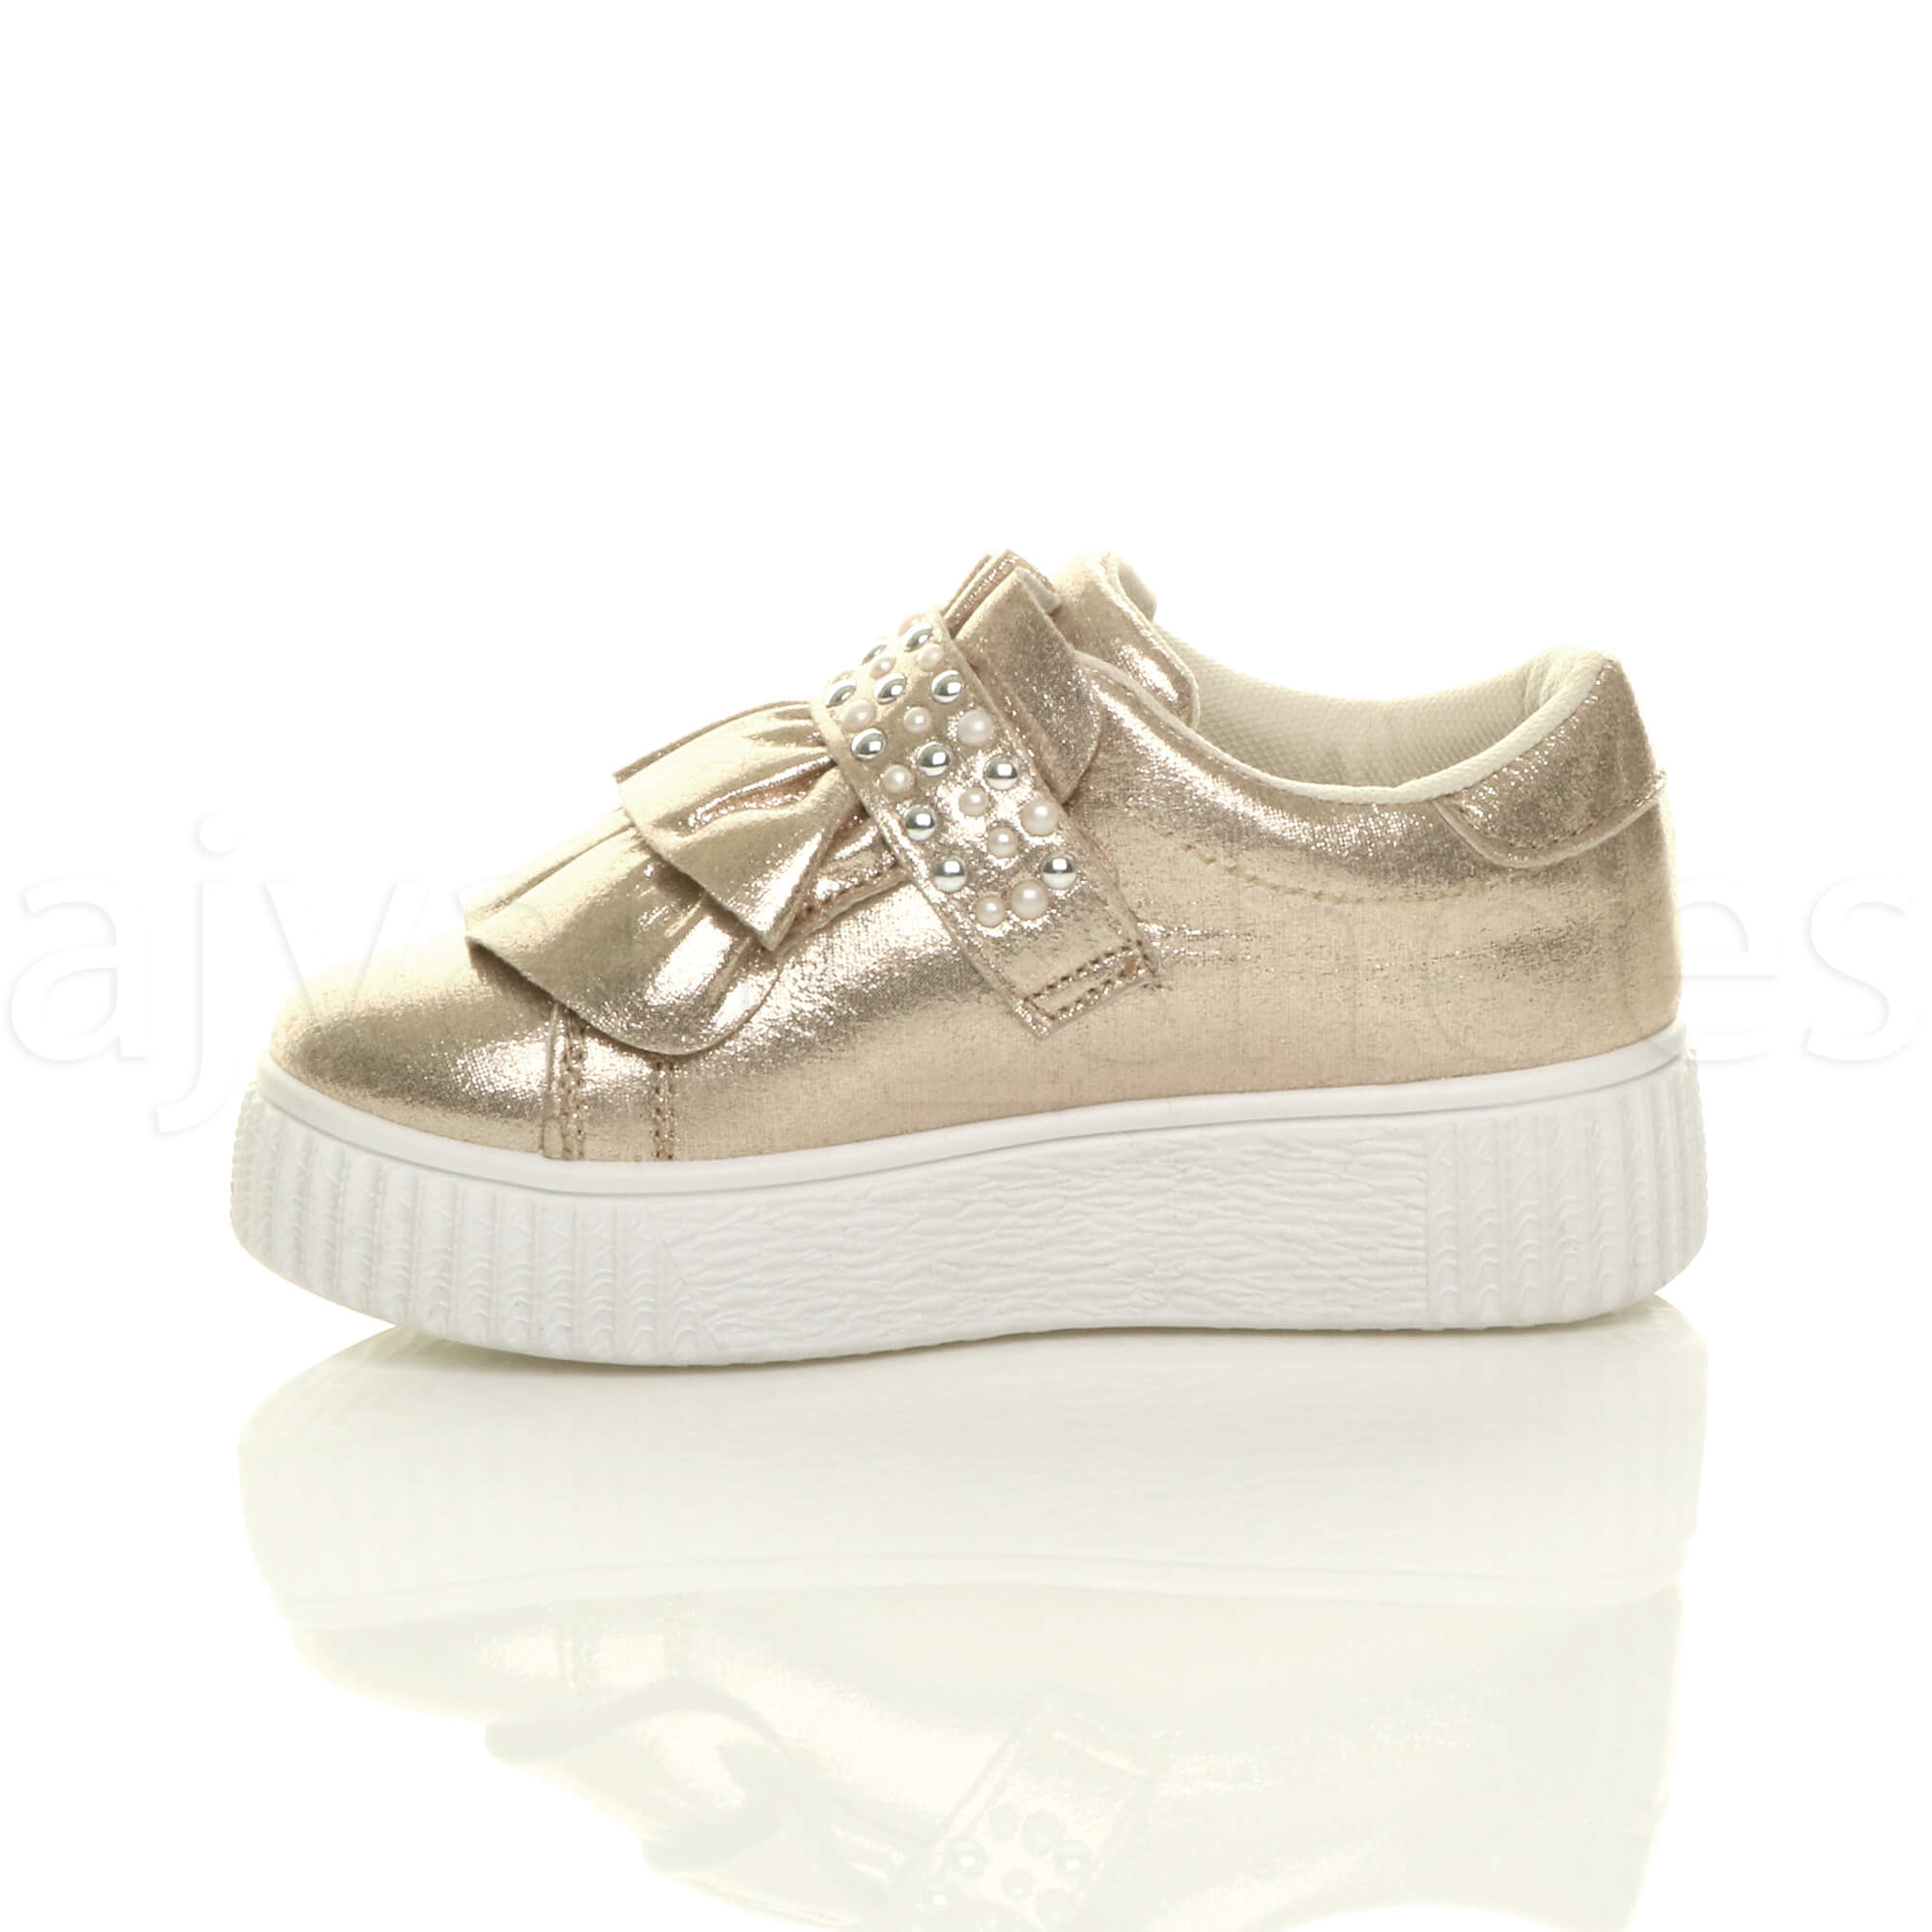 GIRLS KIDS CHILDRENS FLATFORM RUFFLE STUDDED PARTY TRAINERS PUMPS SHOES SIZE